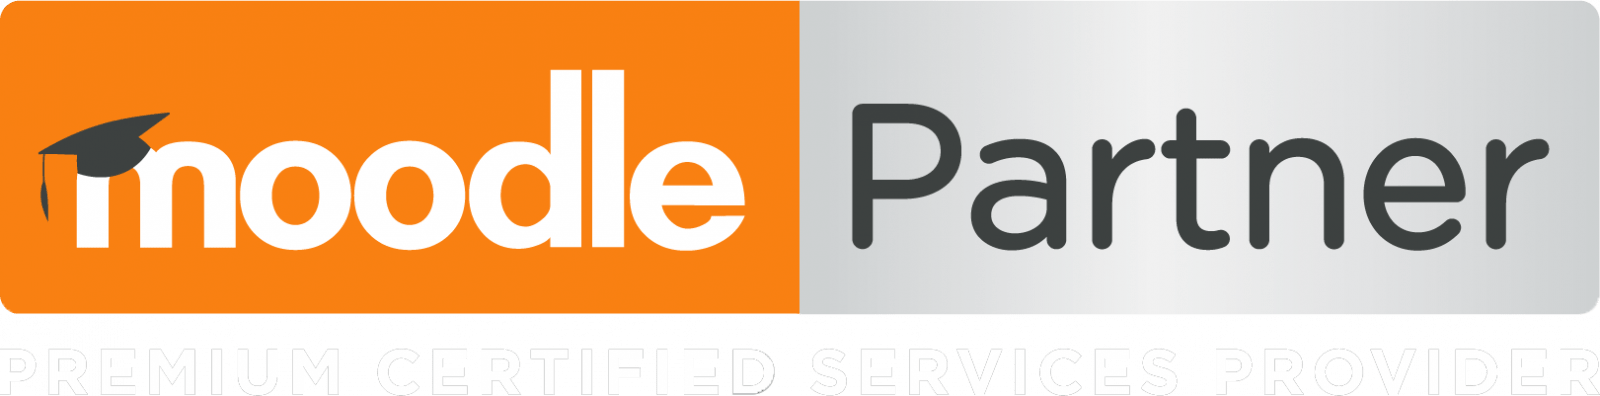 Moodle Certified Premium Partner Badge